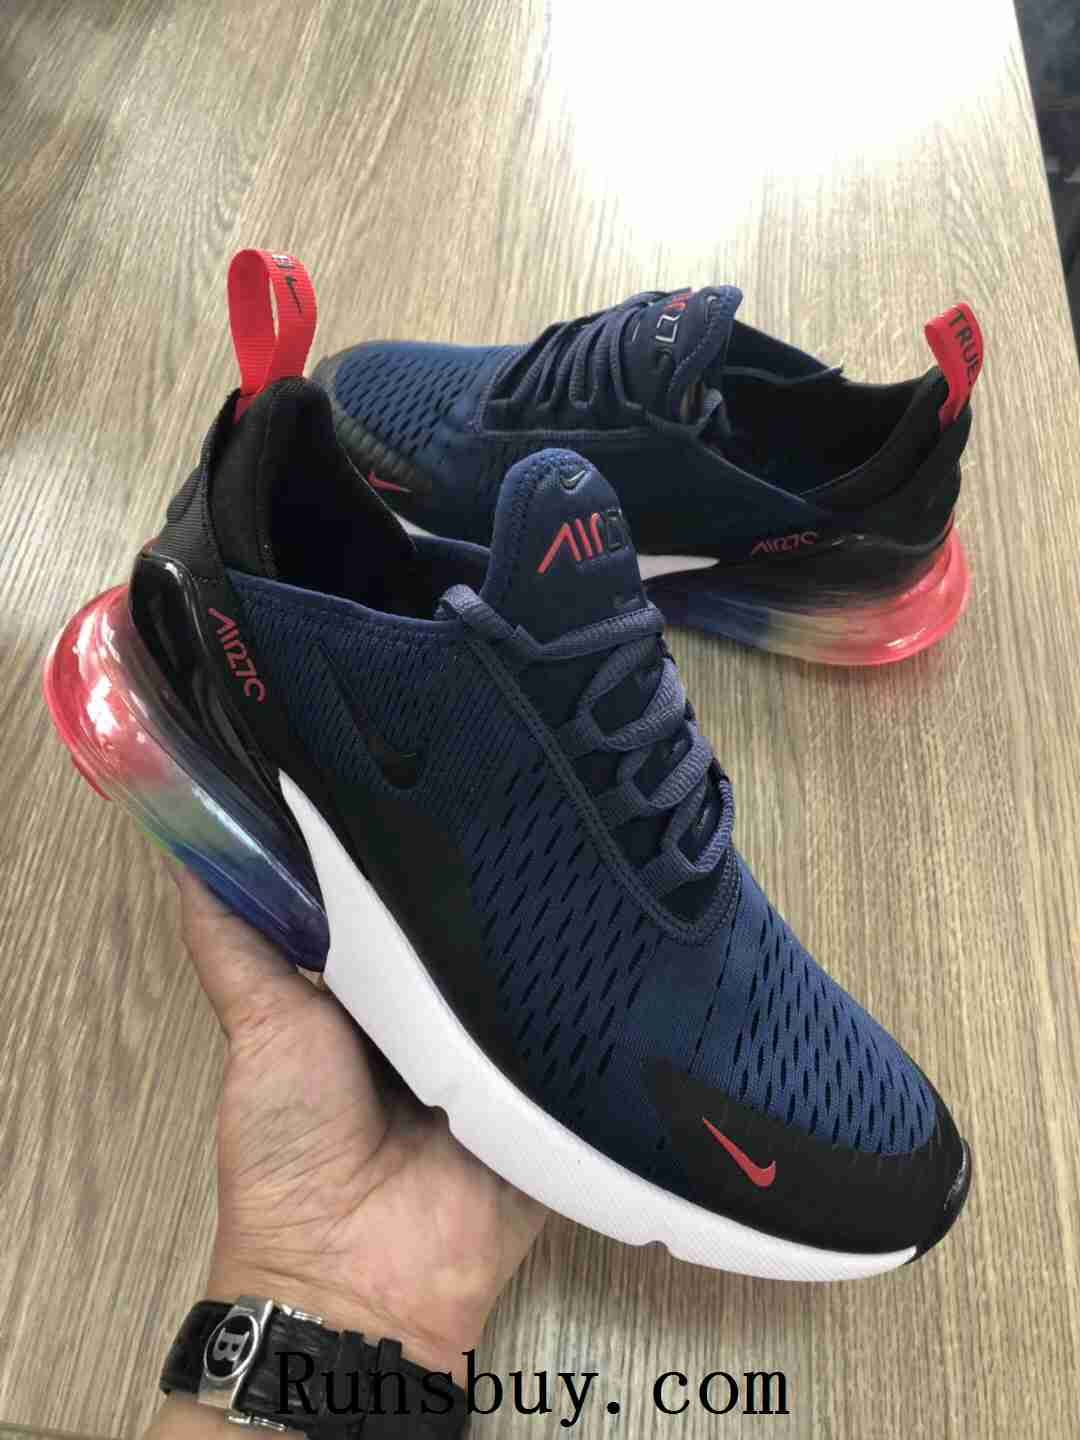 new styles cadc9 c2ade Nike Air Max 270 Betrue Blue Black Rainbow Women Men Running Shoes